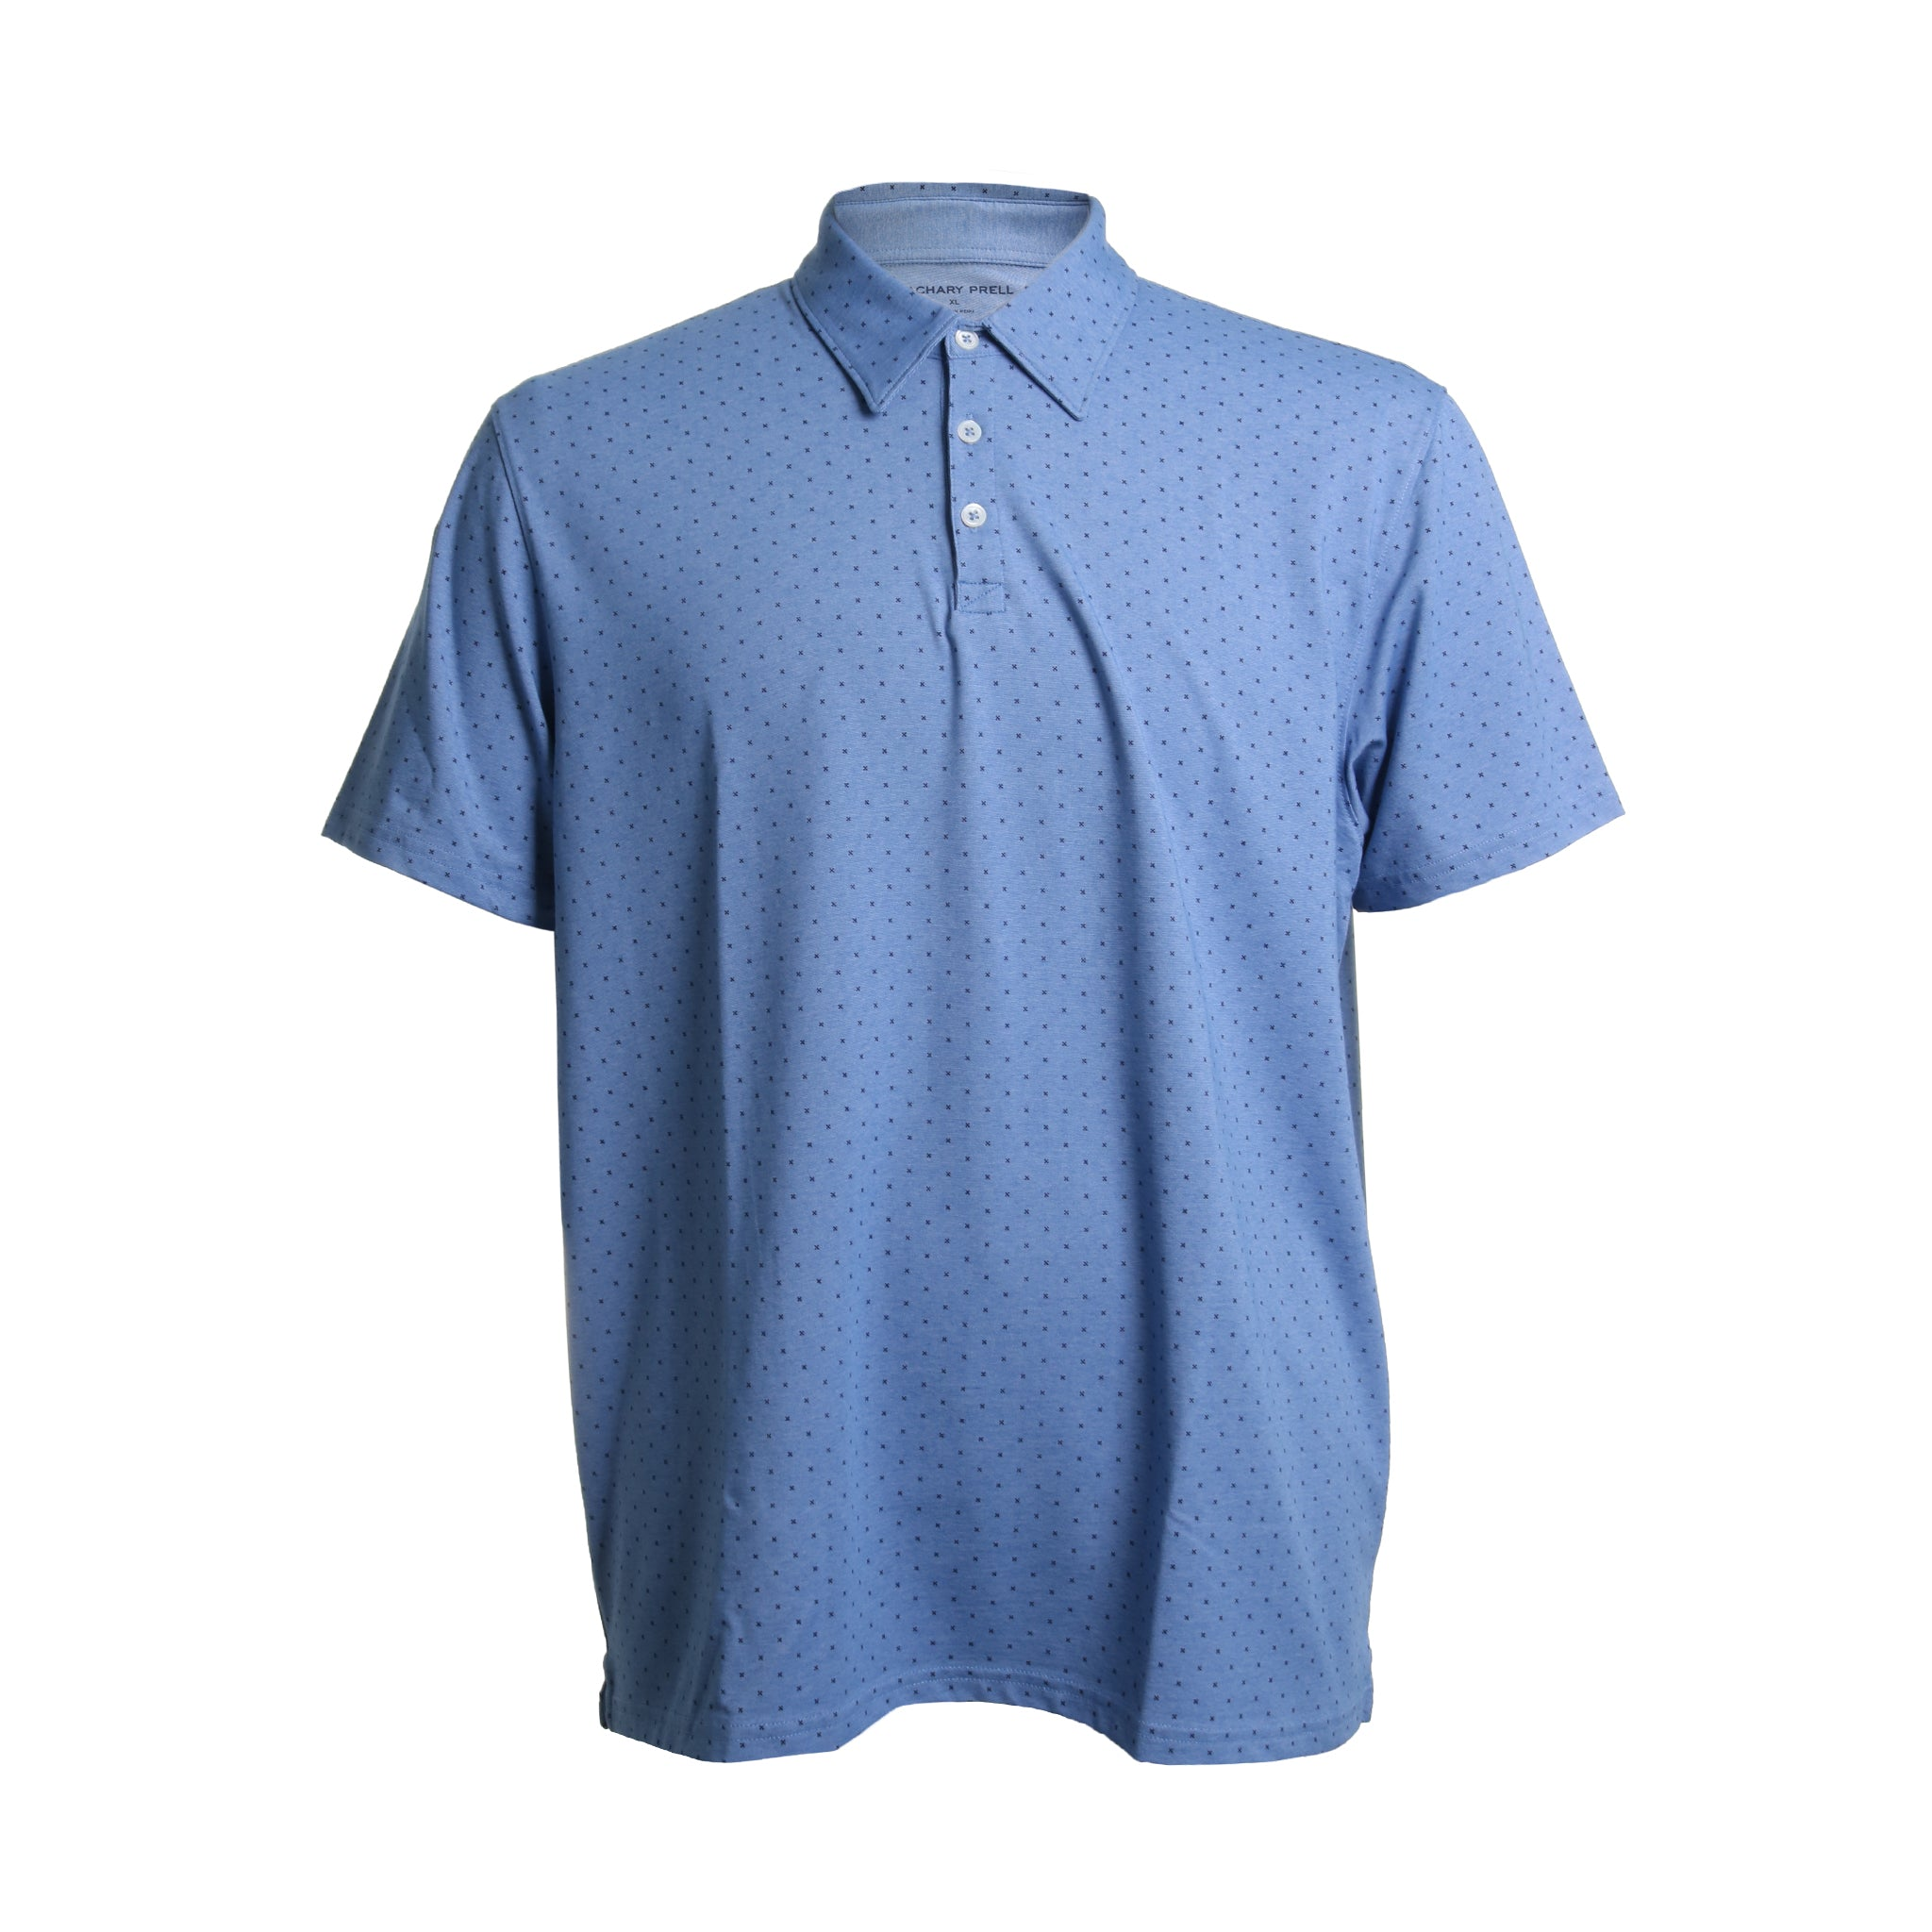 Bayville Cotton Short Sleeve Polo Shirt